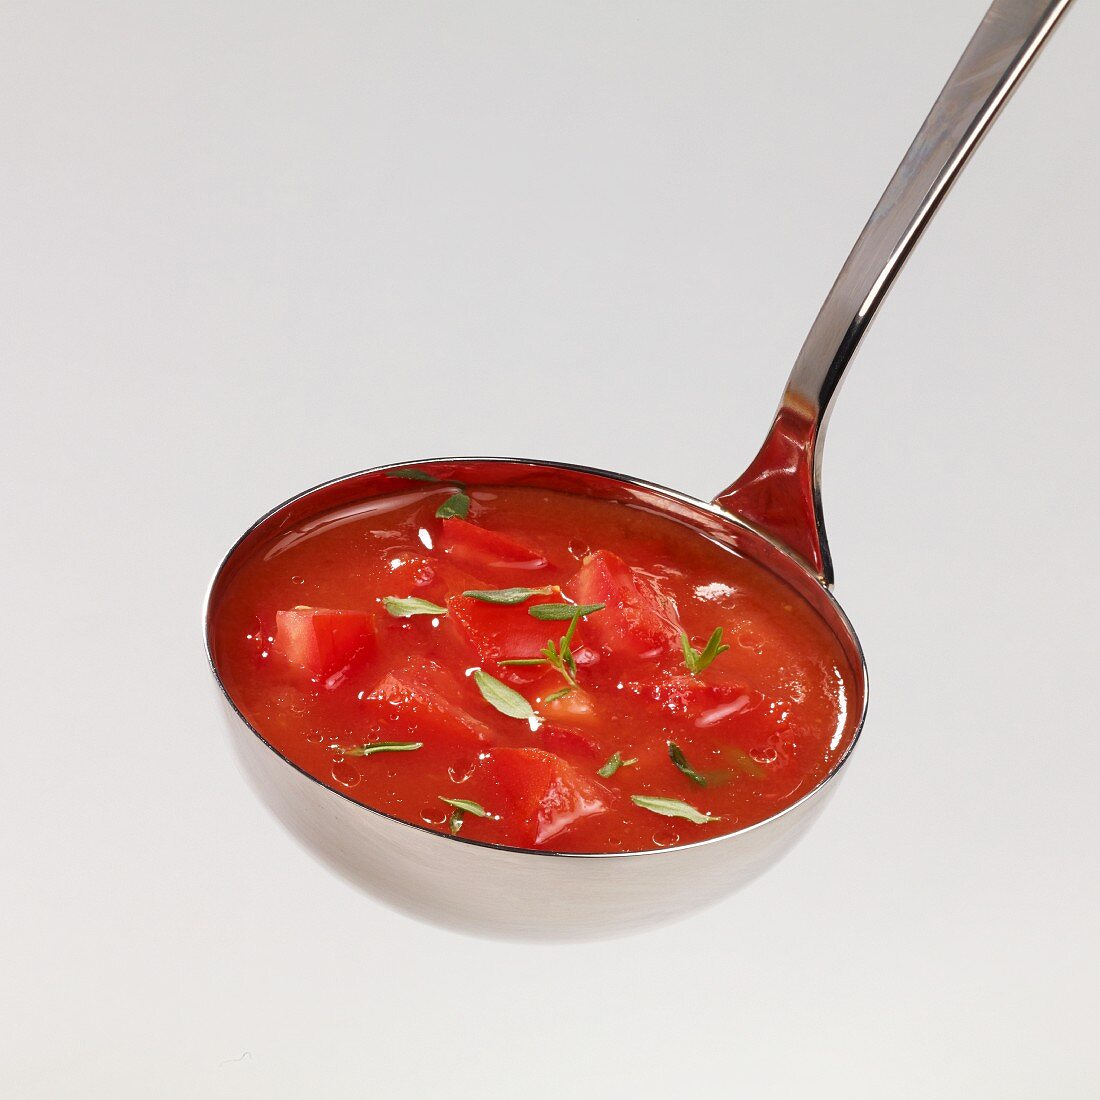 Tomato soup with thyme in a ladle